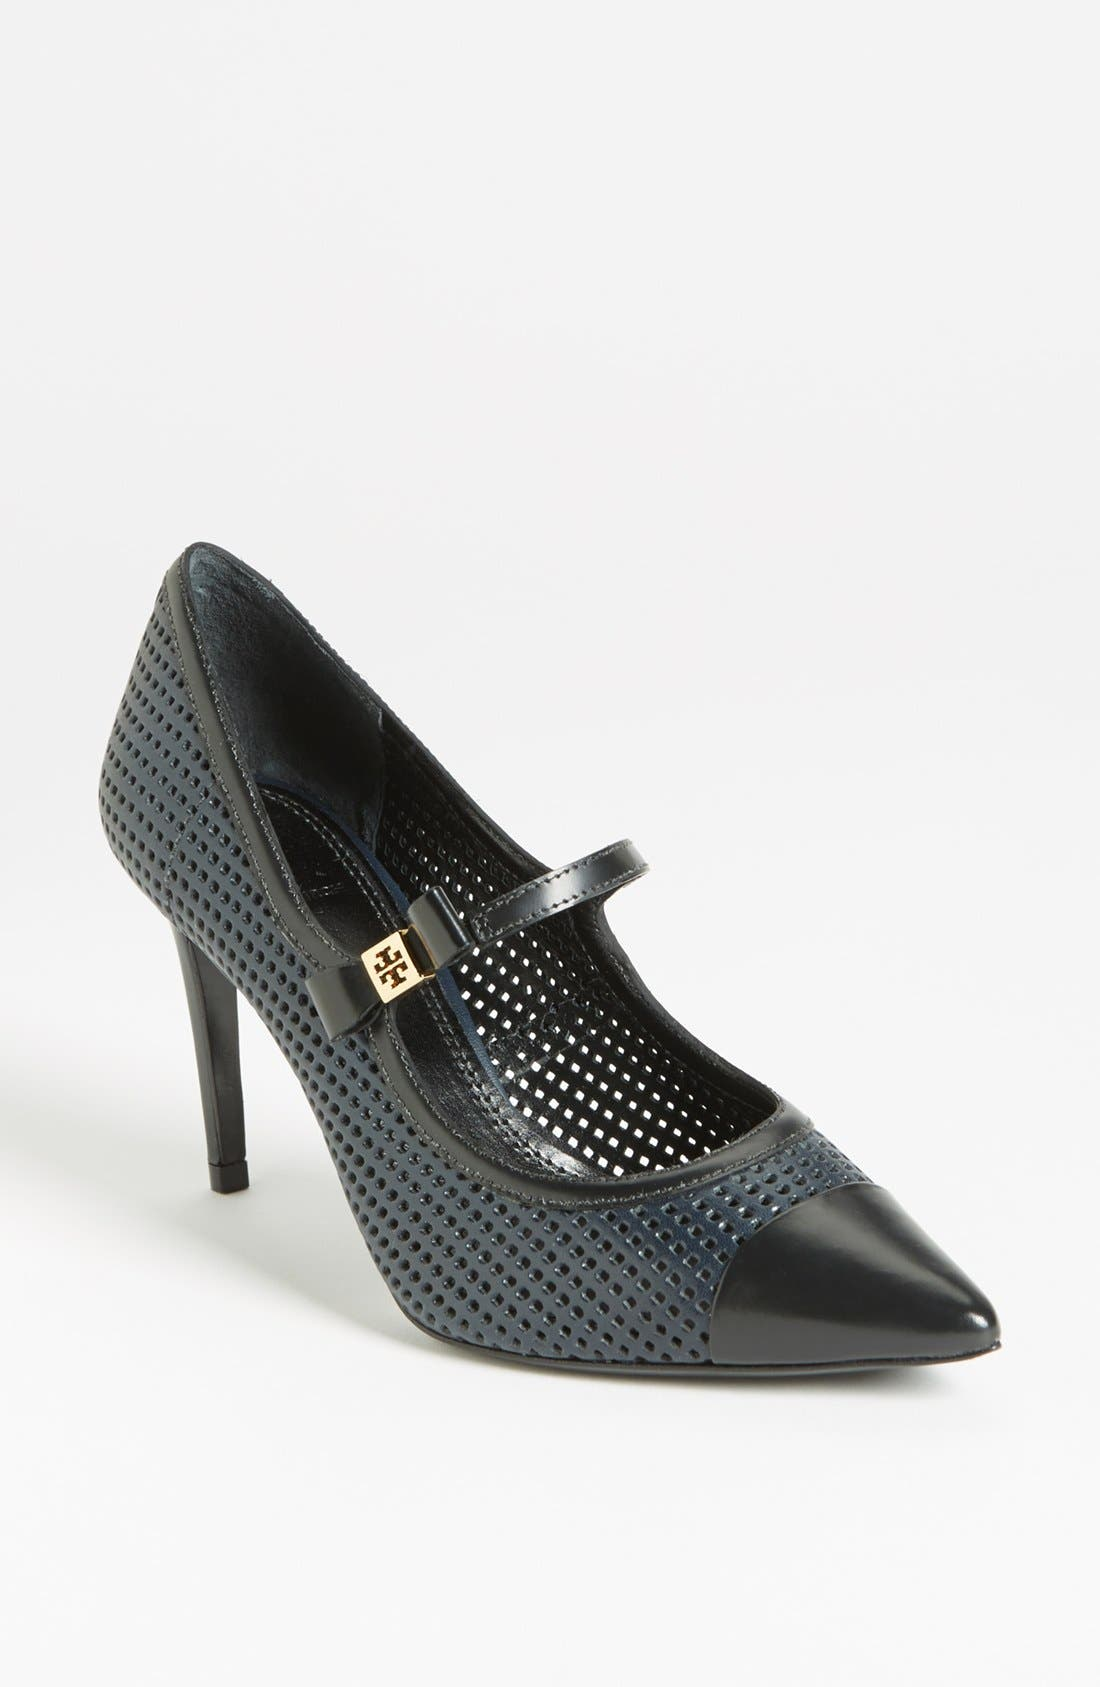 Main Image - Tory Burch 'Larissa' Pump